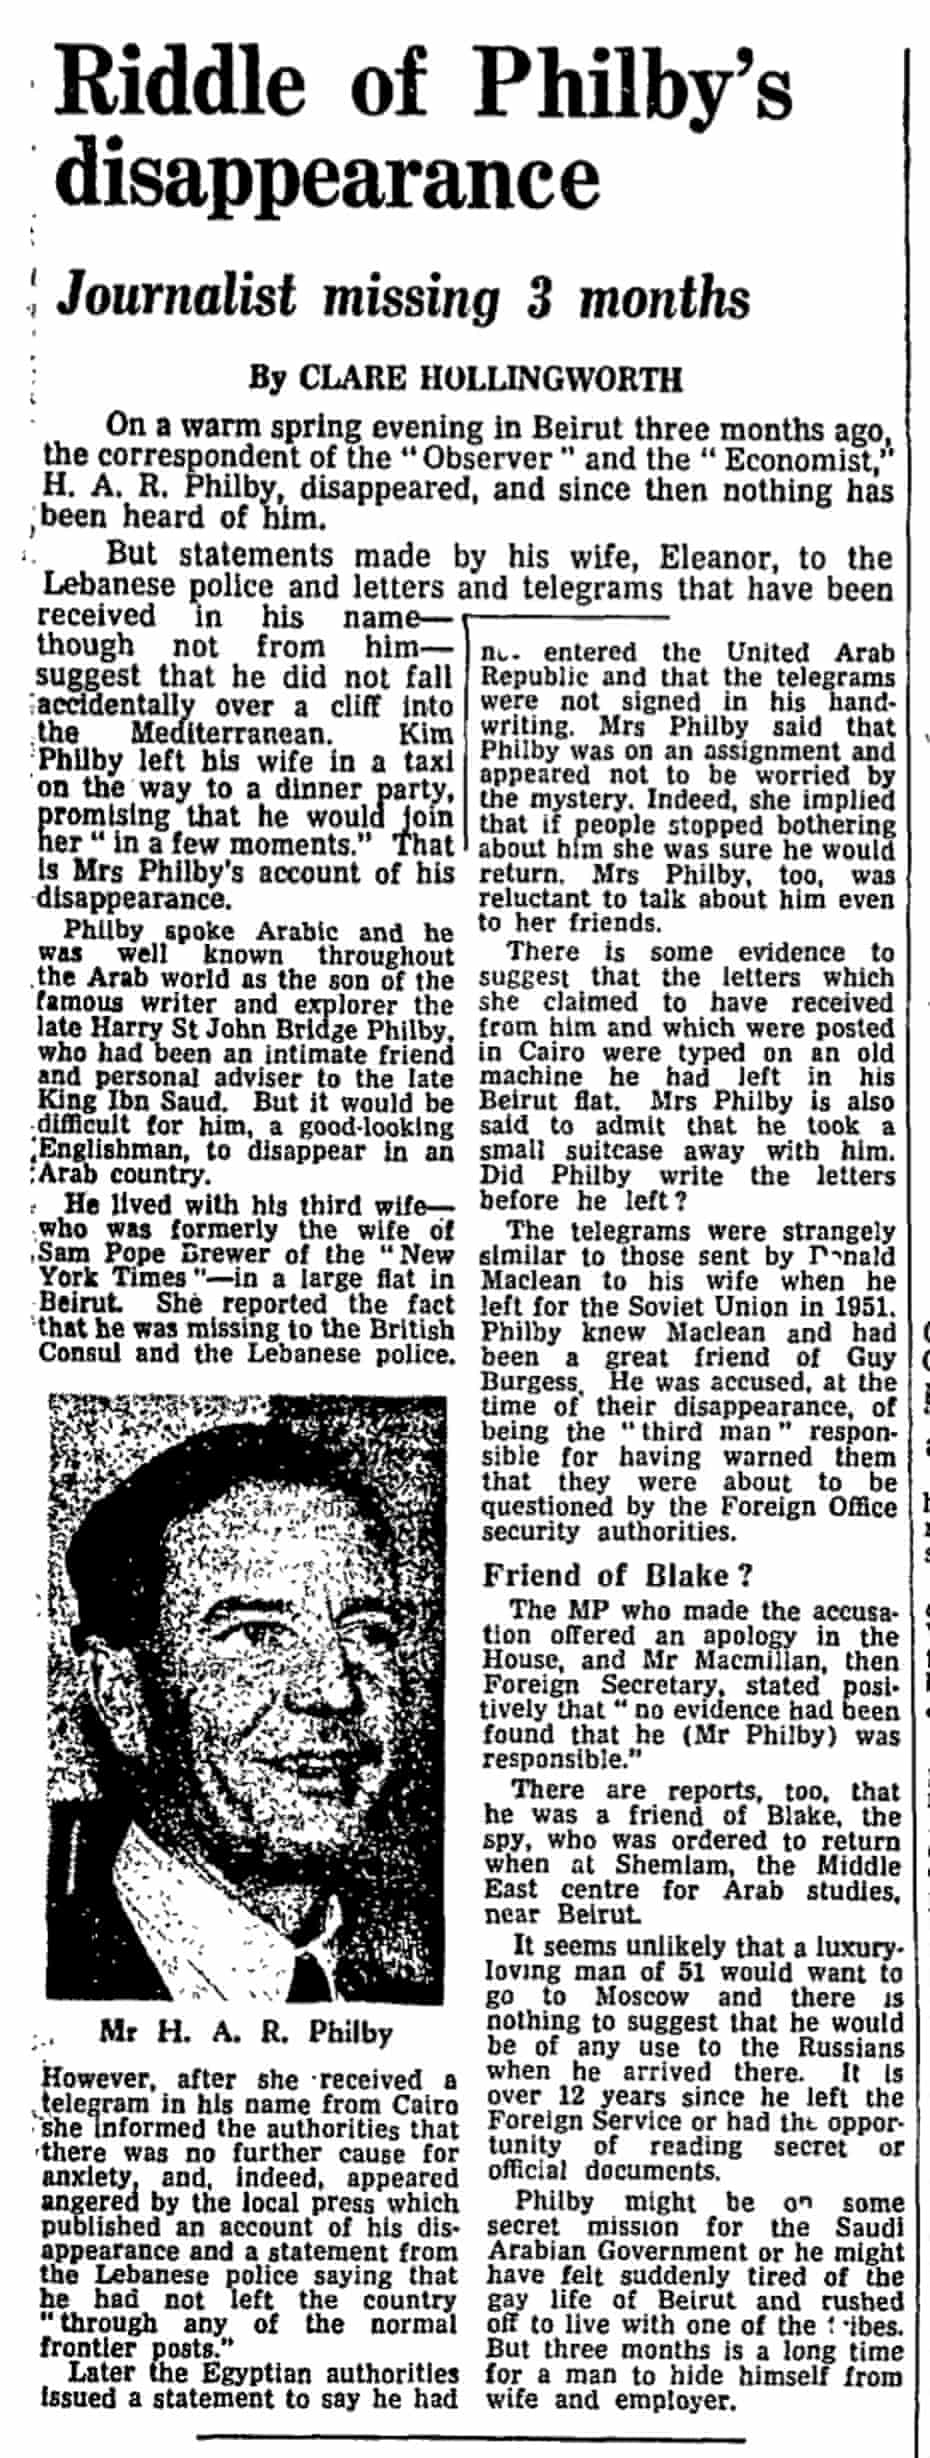 Clare Hollingworth's Guardian story which was published on 27 April 1963.